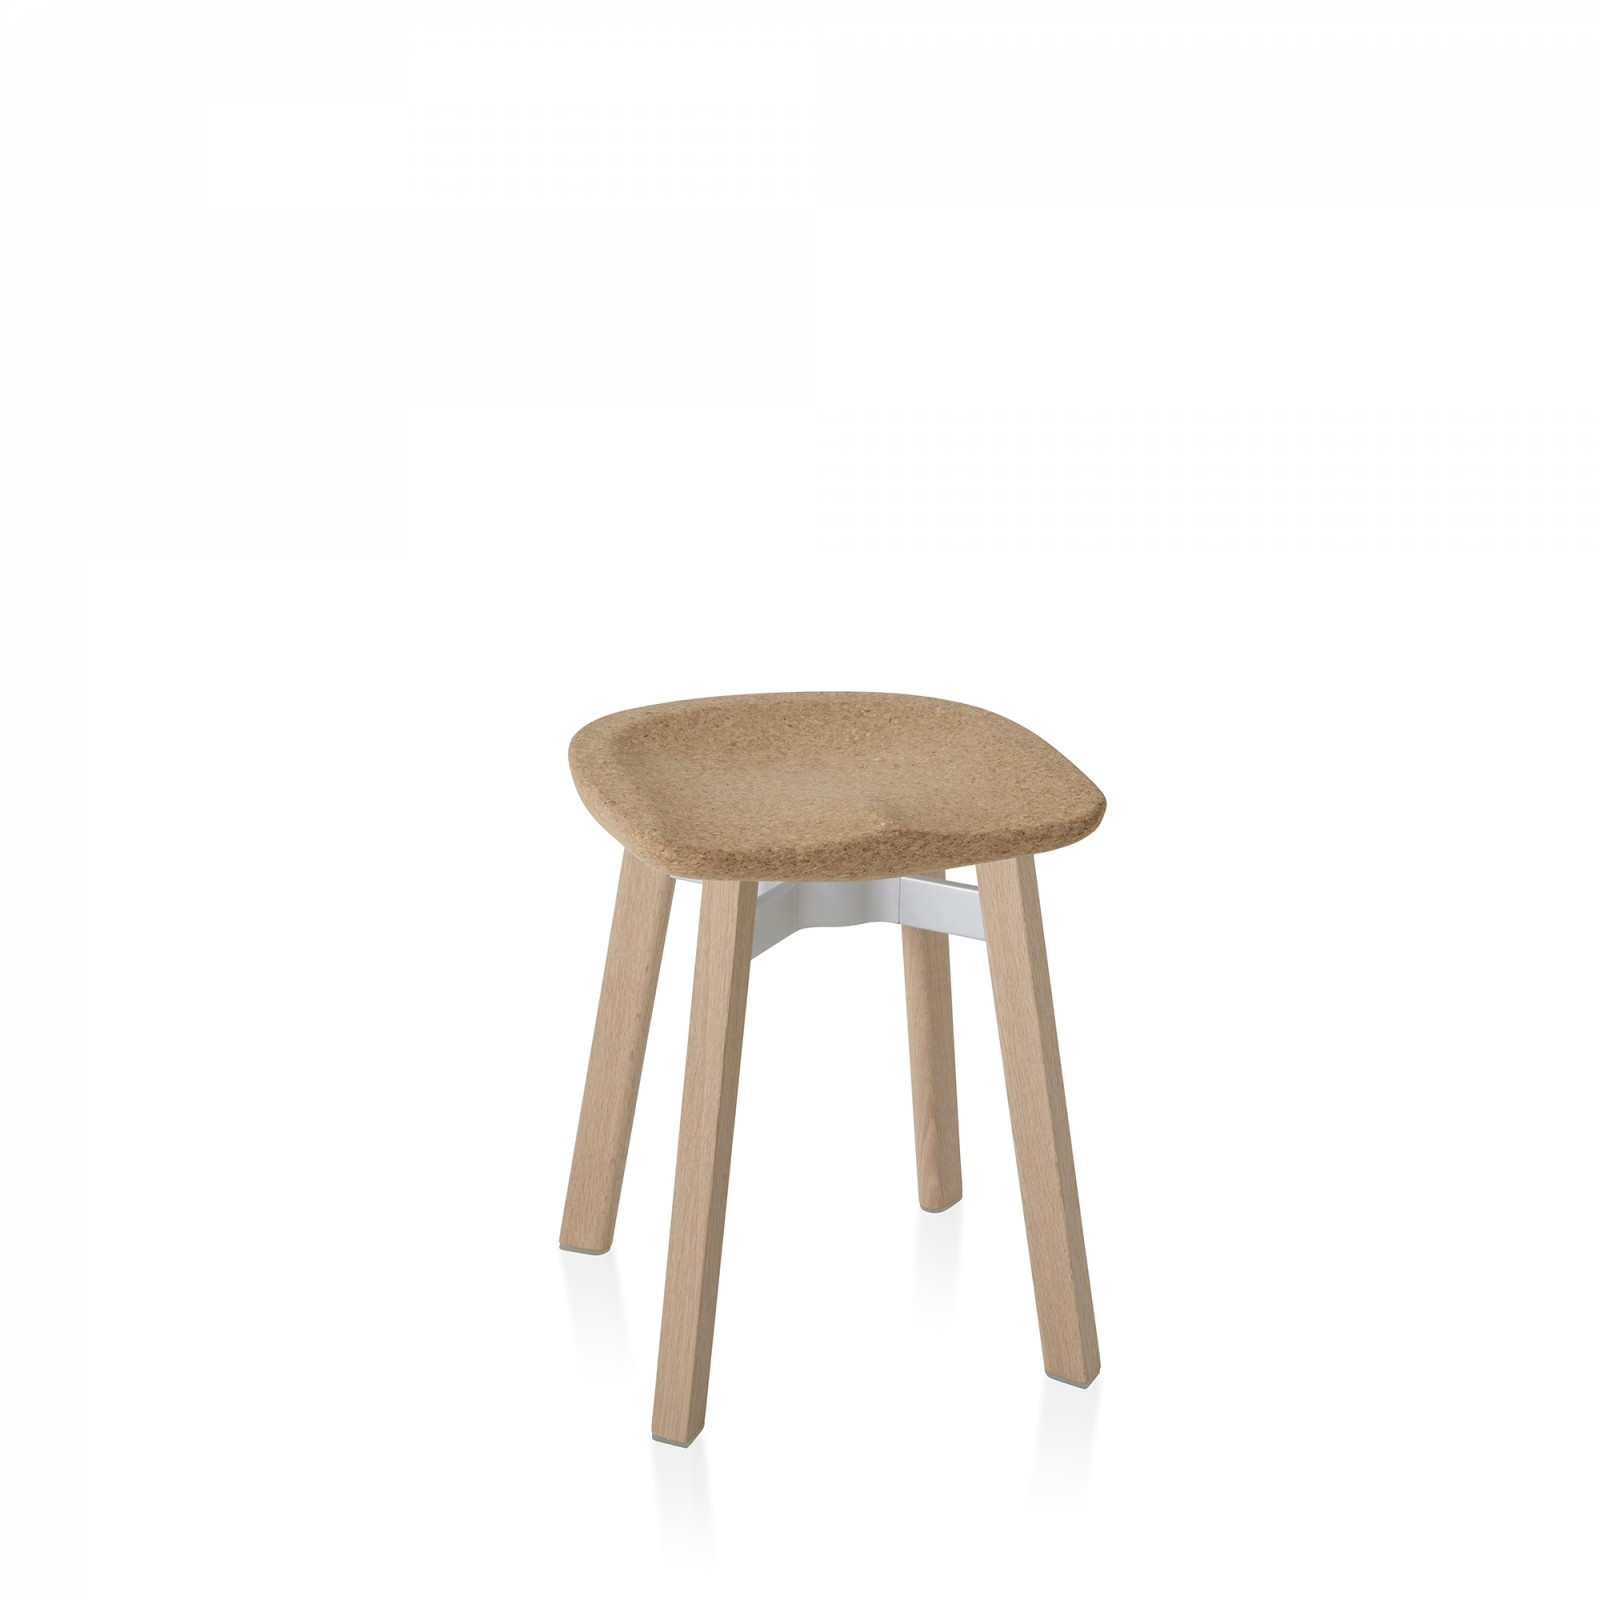 Su Stool Natural Wood, Cork